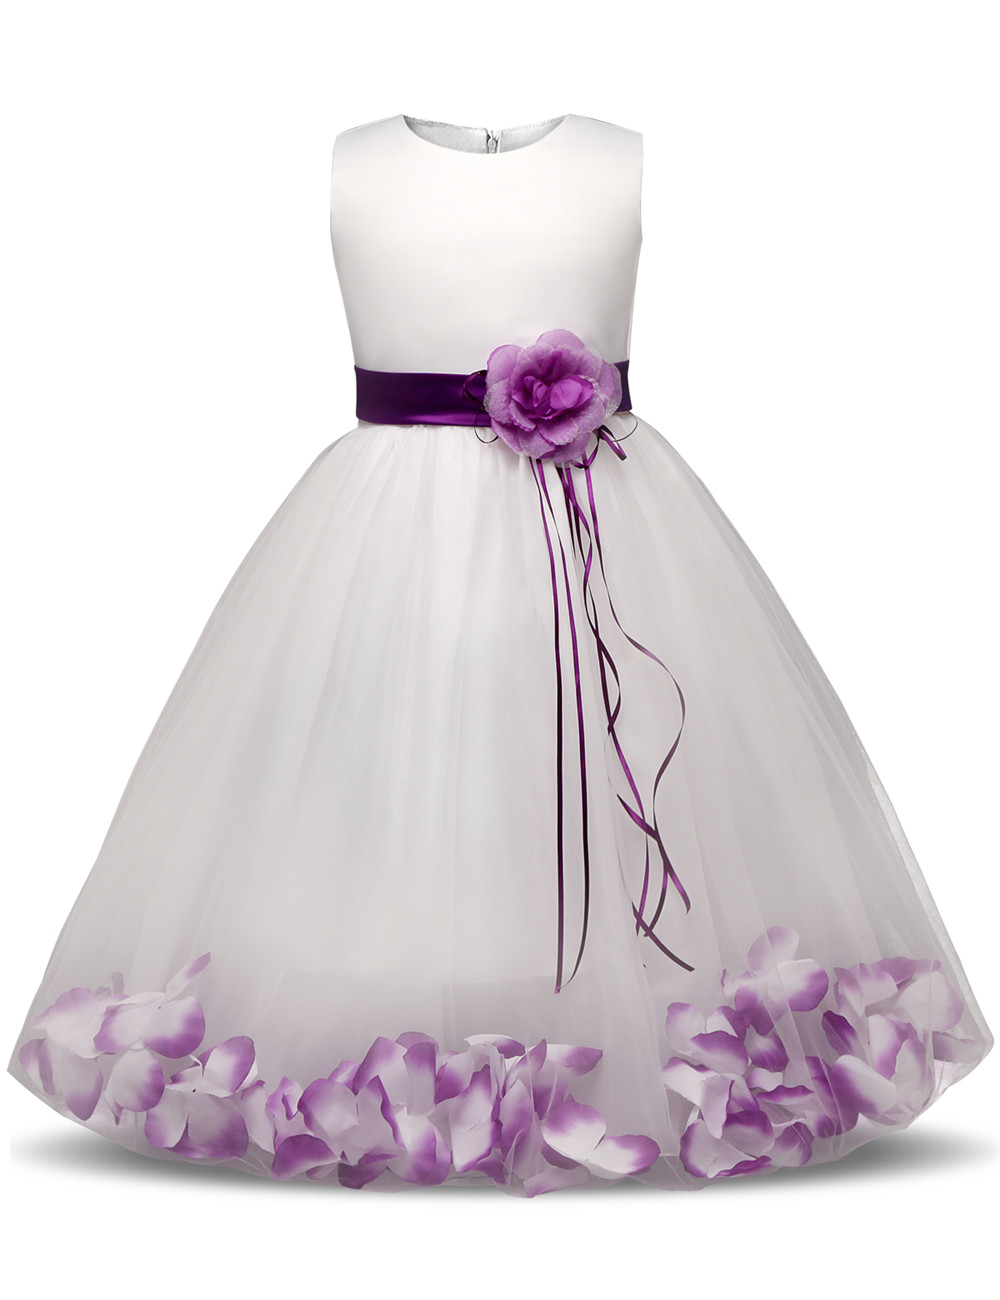 Flower Girl Dress Summer Clothes Girl 2018 Baby Girl Wedding Veil Dresses Kids's Party Wear Costume For Girl Children Clothing sitemap html page 10 page 8 page 7 page 3